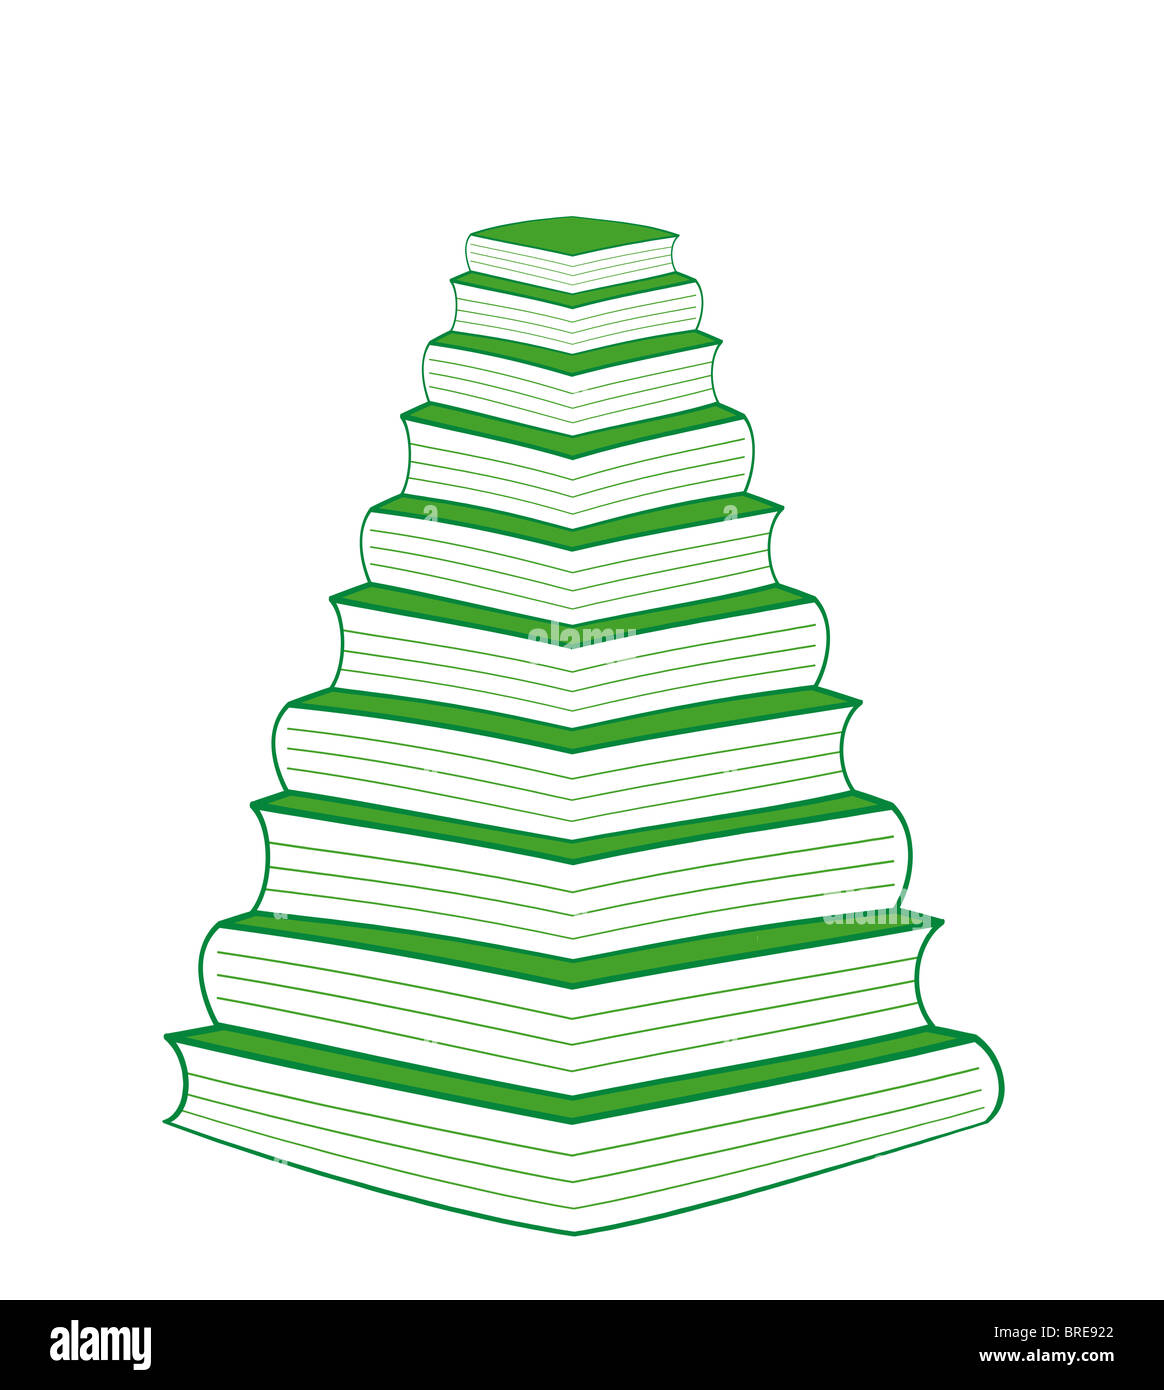 10 green books christmas tree one book on top of each other in perspective - Christmas Tree Book